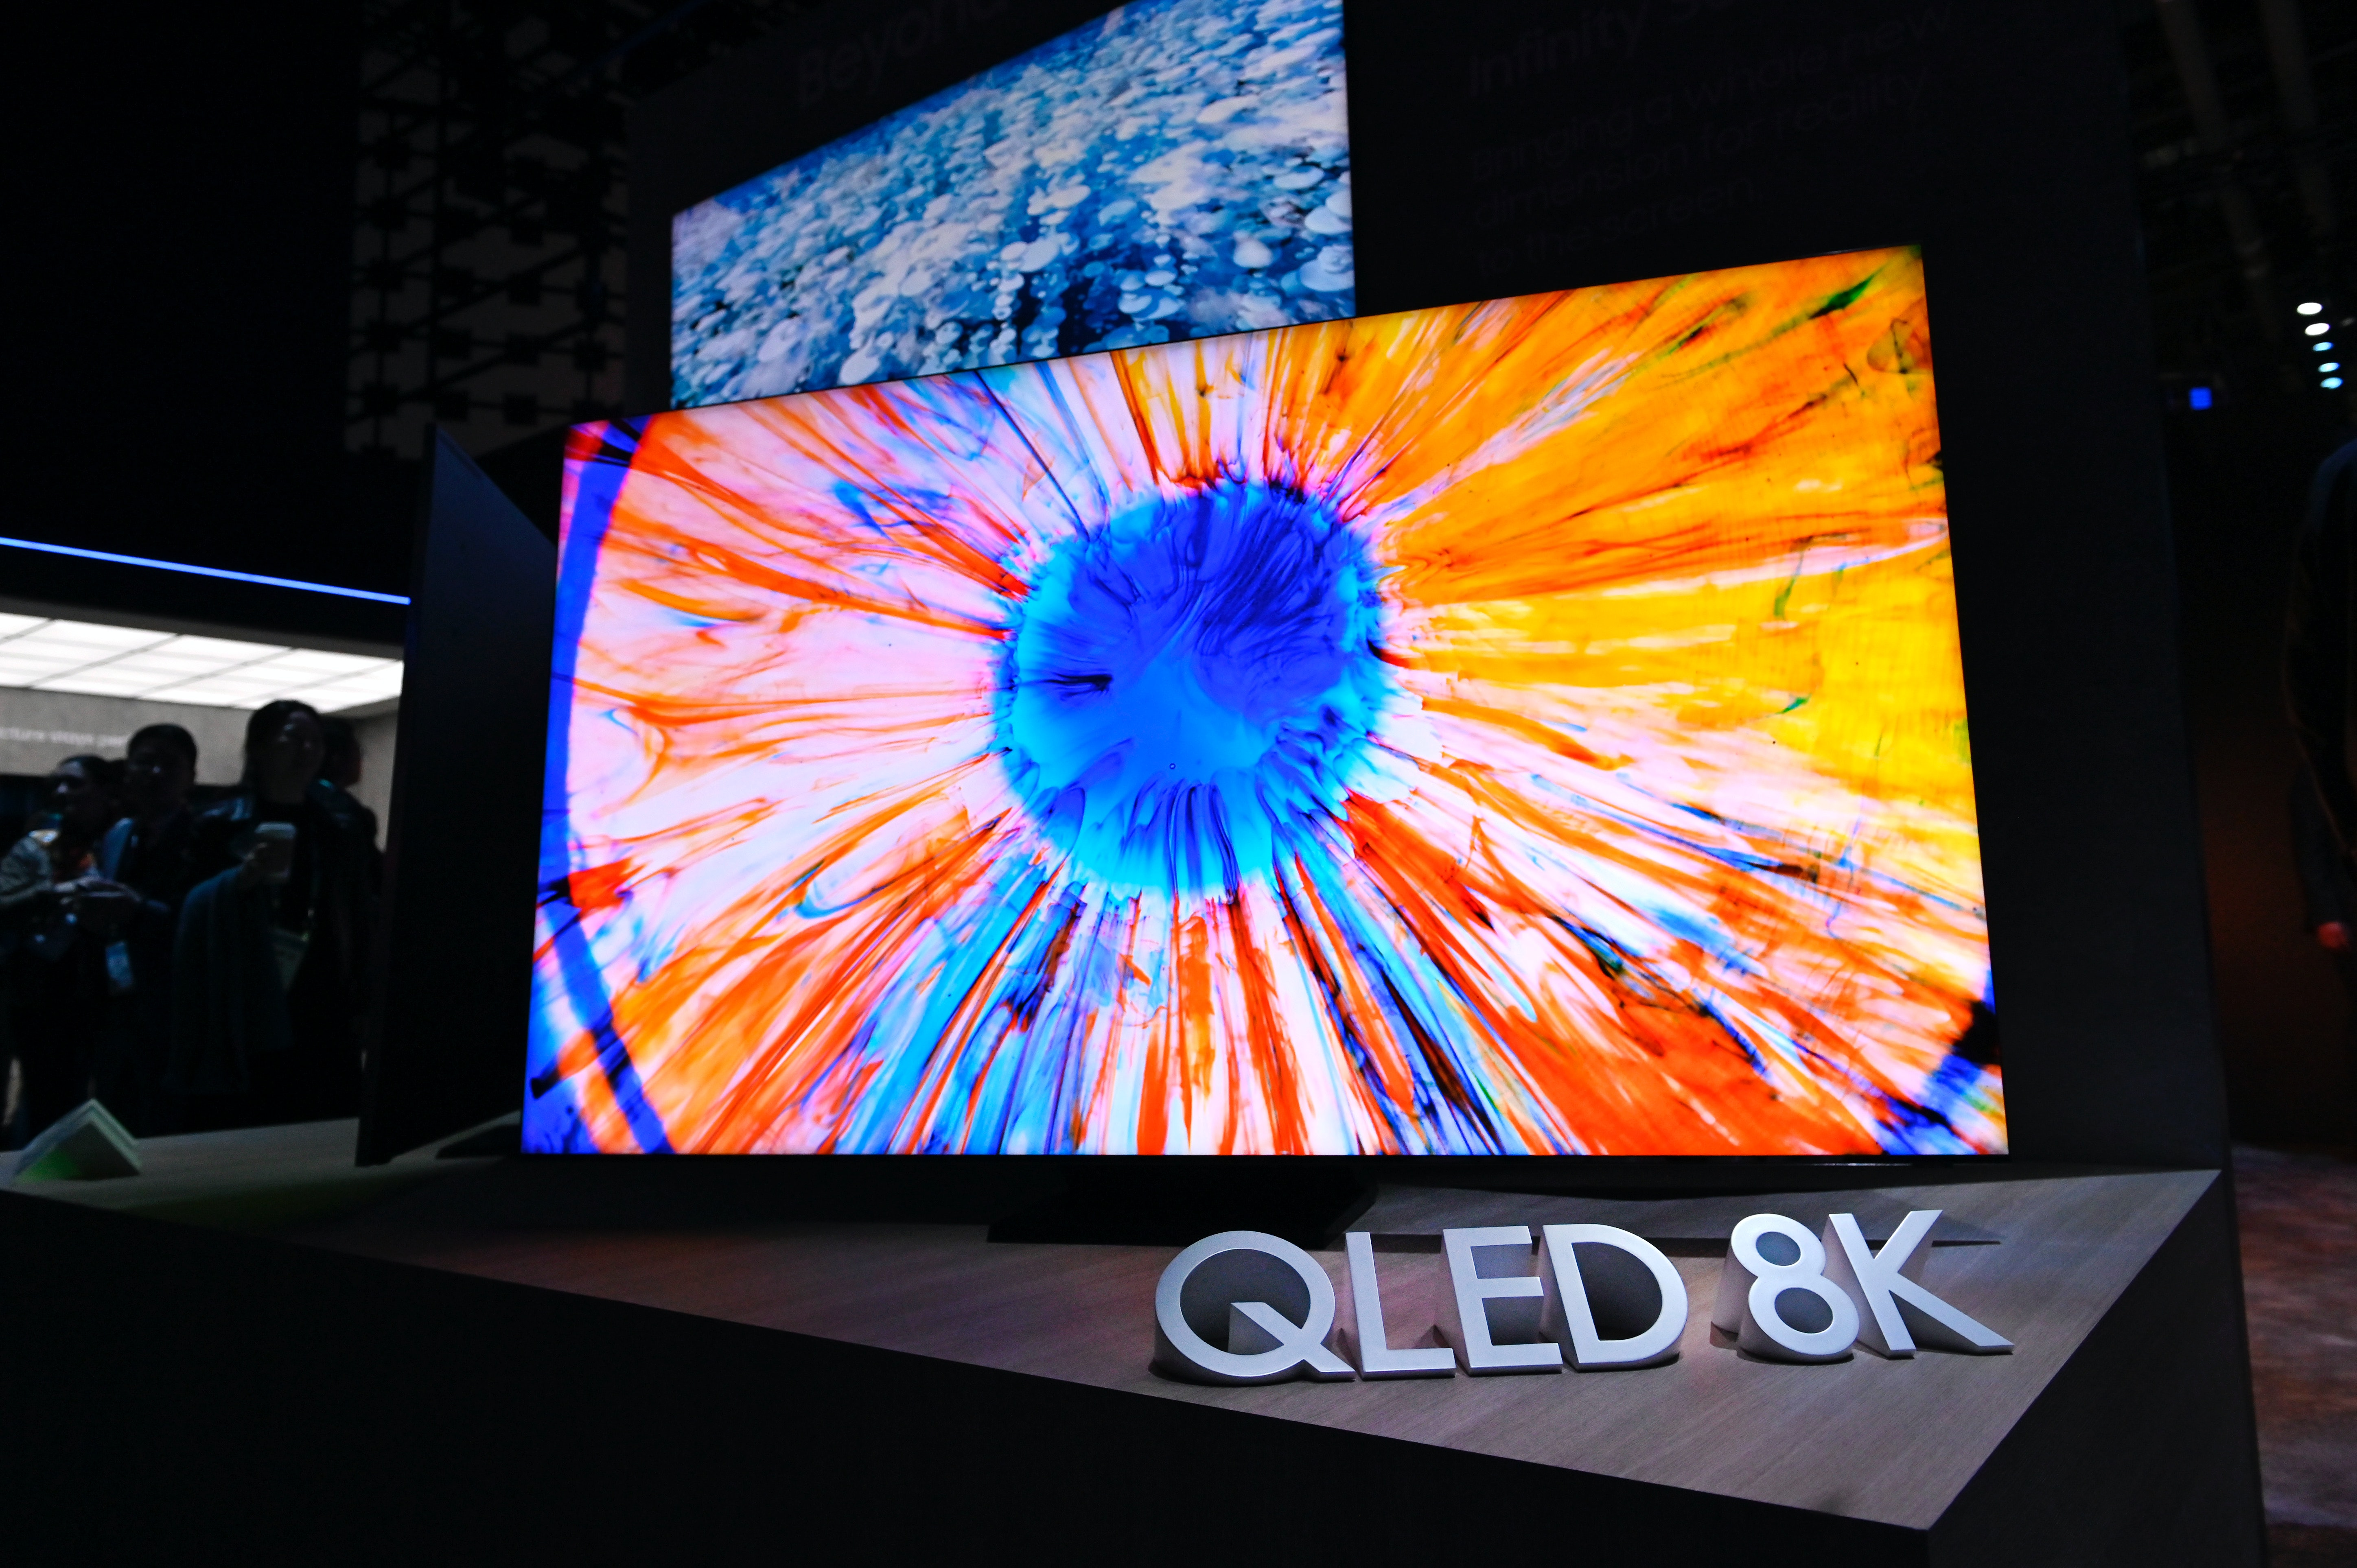 For the love of god, don't buy an 8K TV